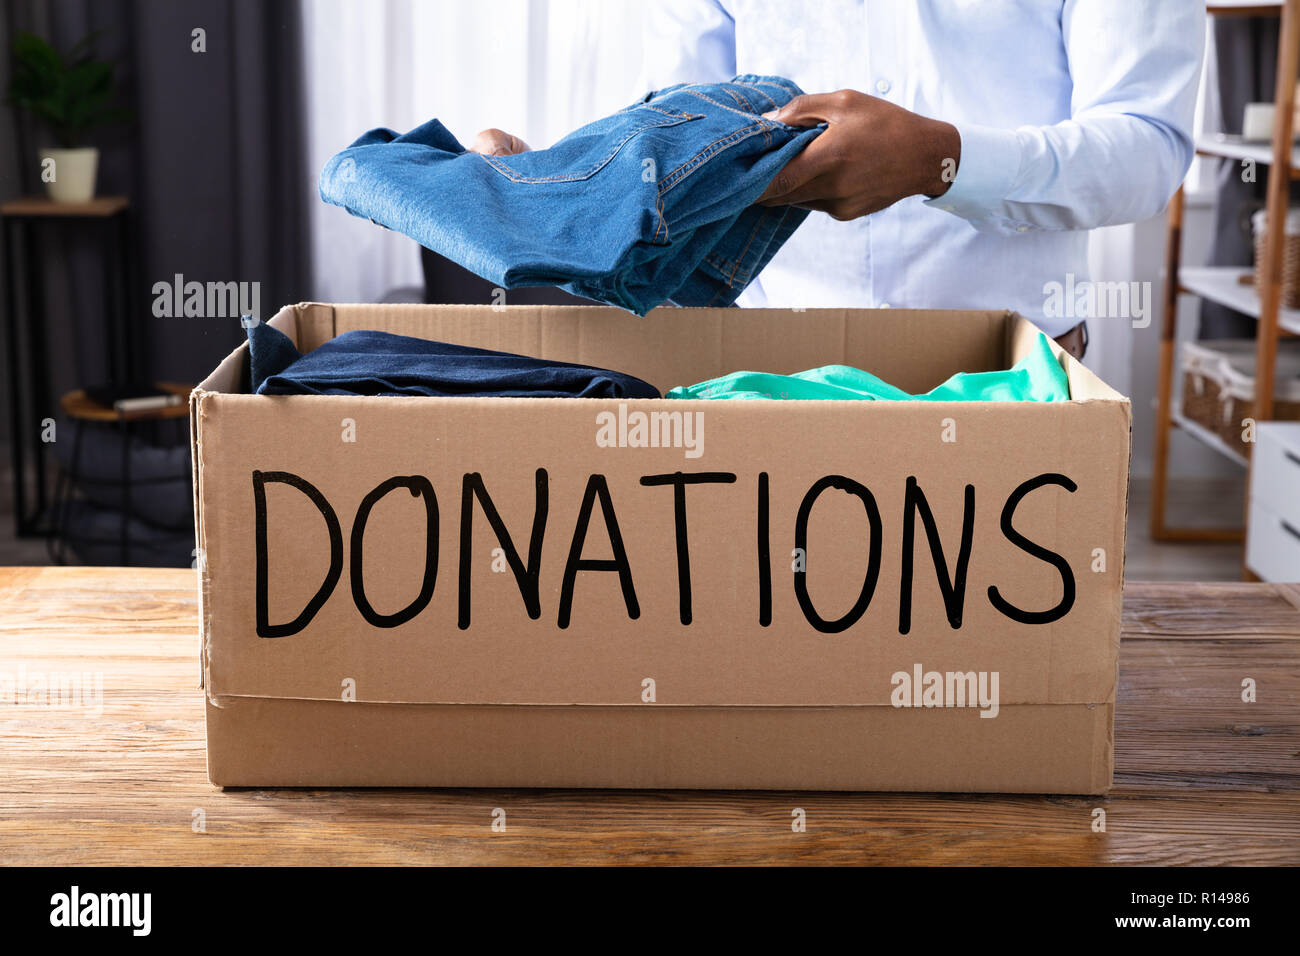 African Man Putting Clothes In Donation Box - Stock Image